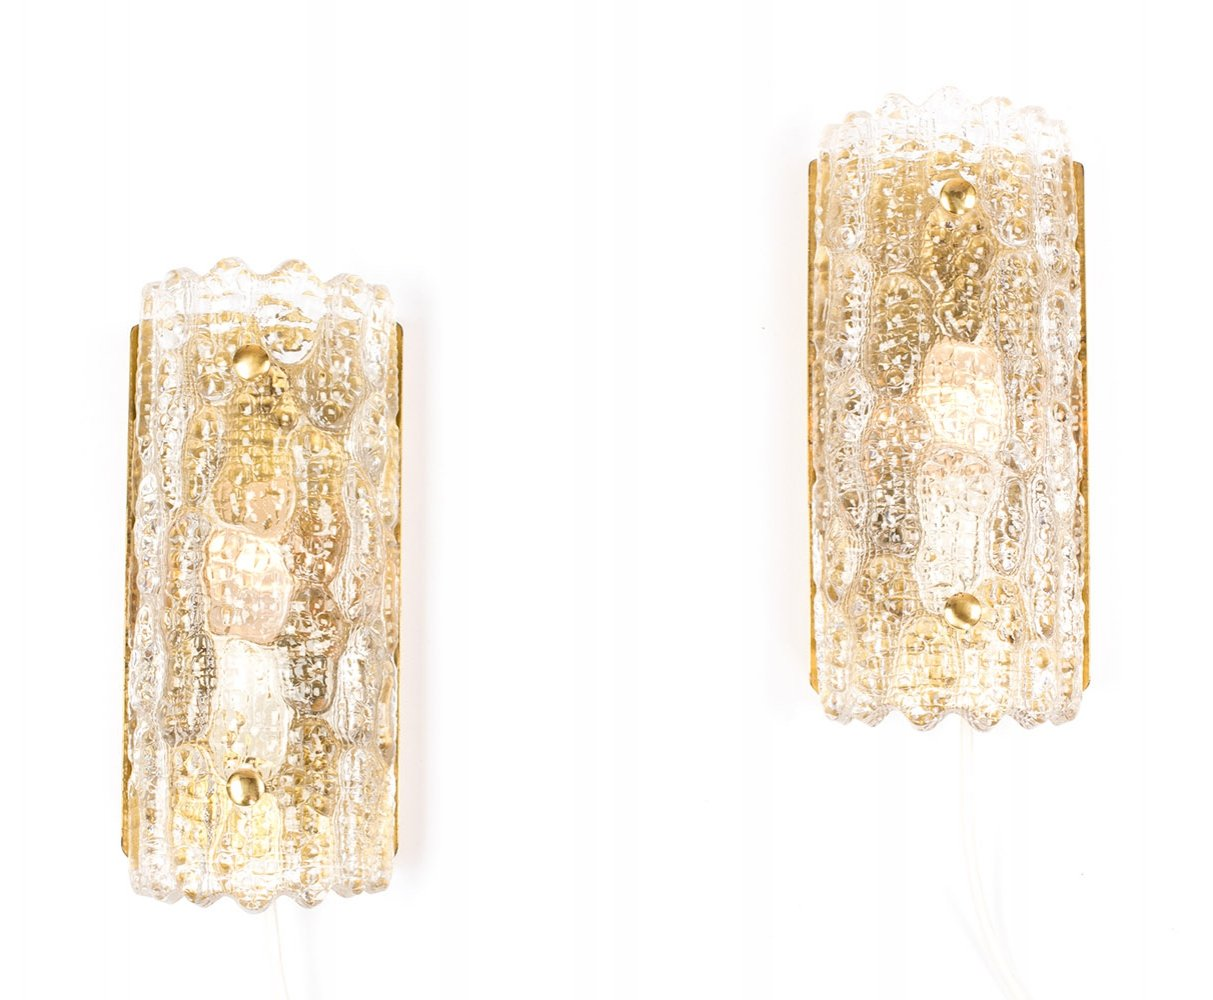 Vintage glass & brass sconces by Carl Fagerlund for Orrefors